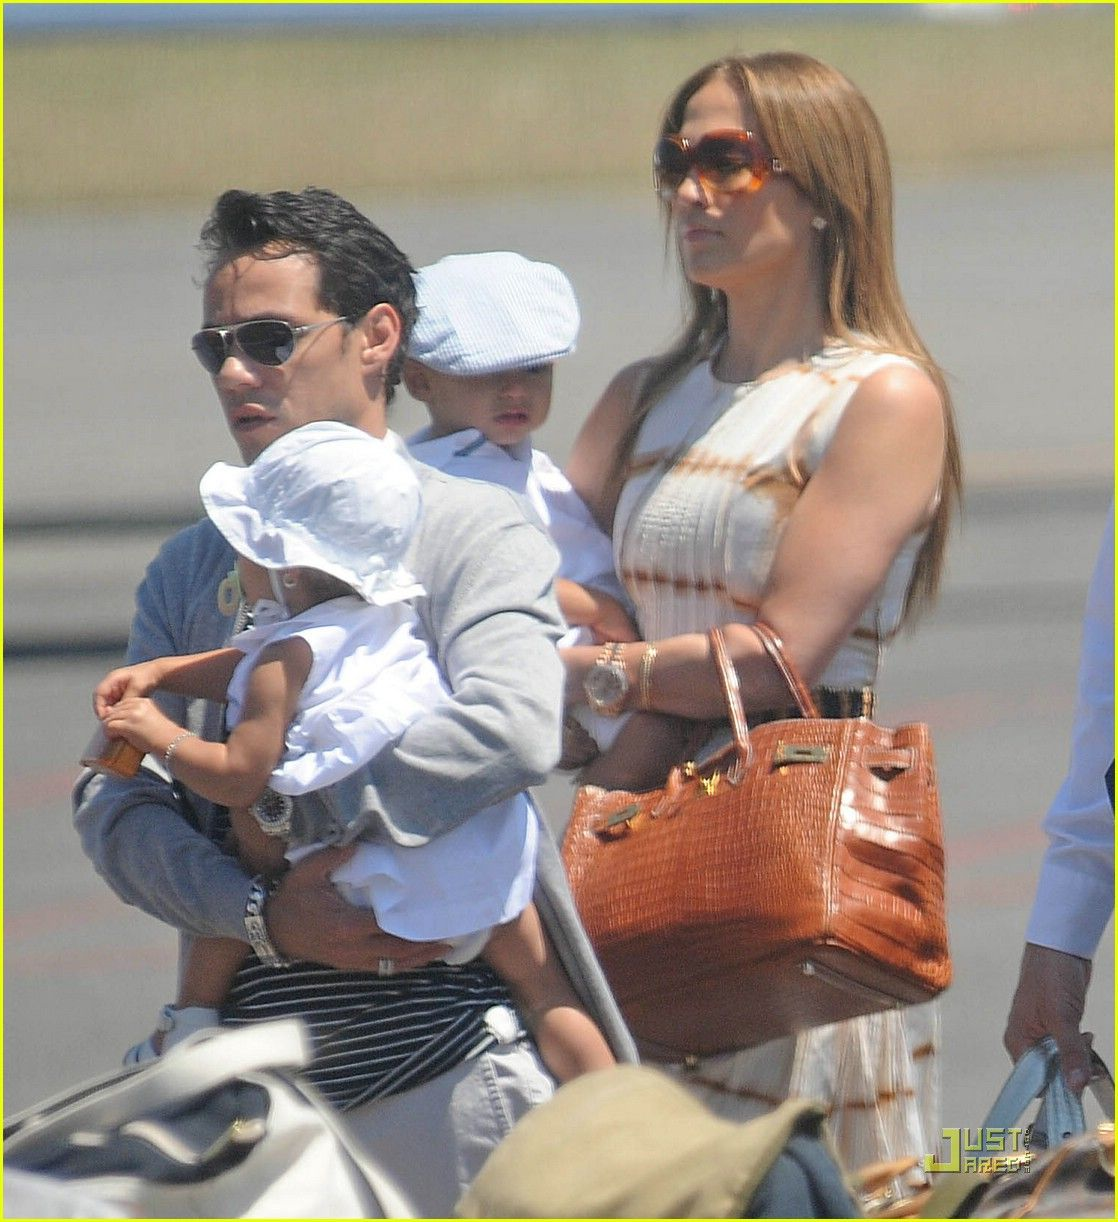 f5777059efd1 Jennifer Lopez (in DSquared2 sunglasses) and husband Marc Anthony carry  their cute twins Max and Emme